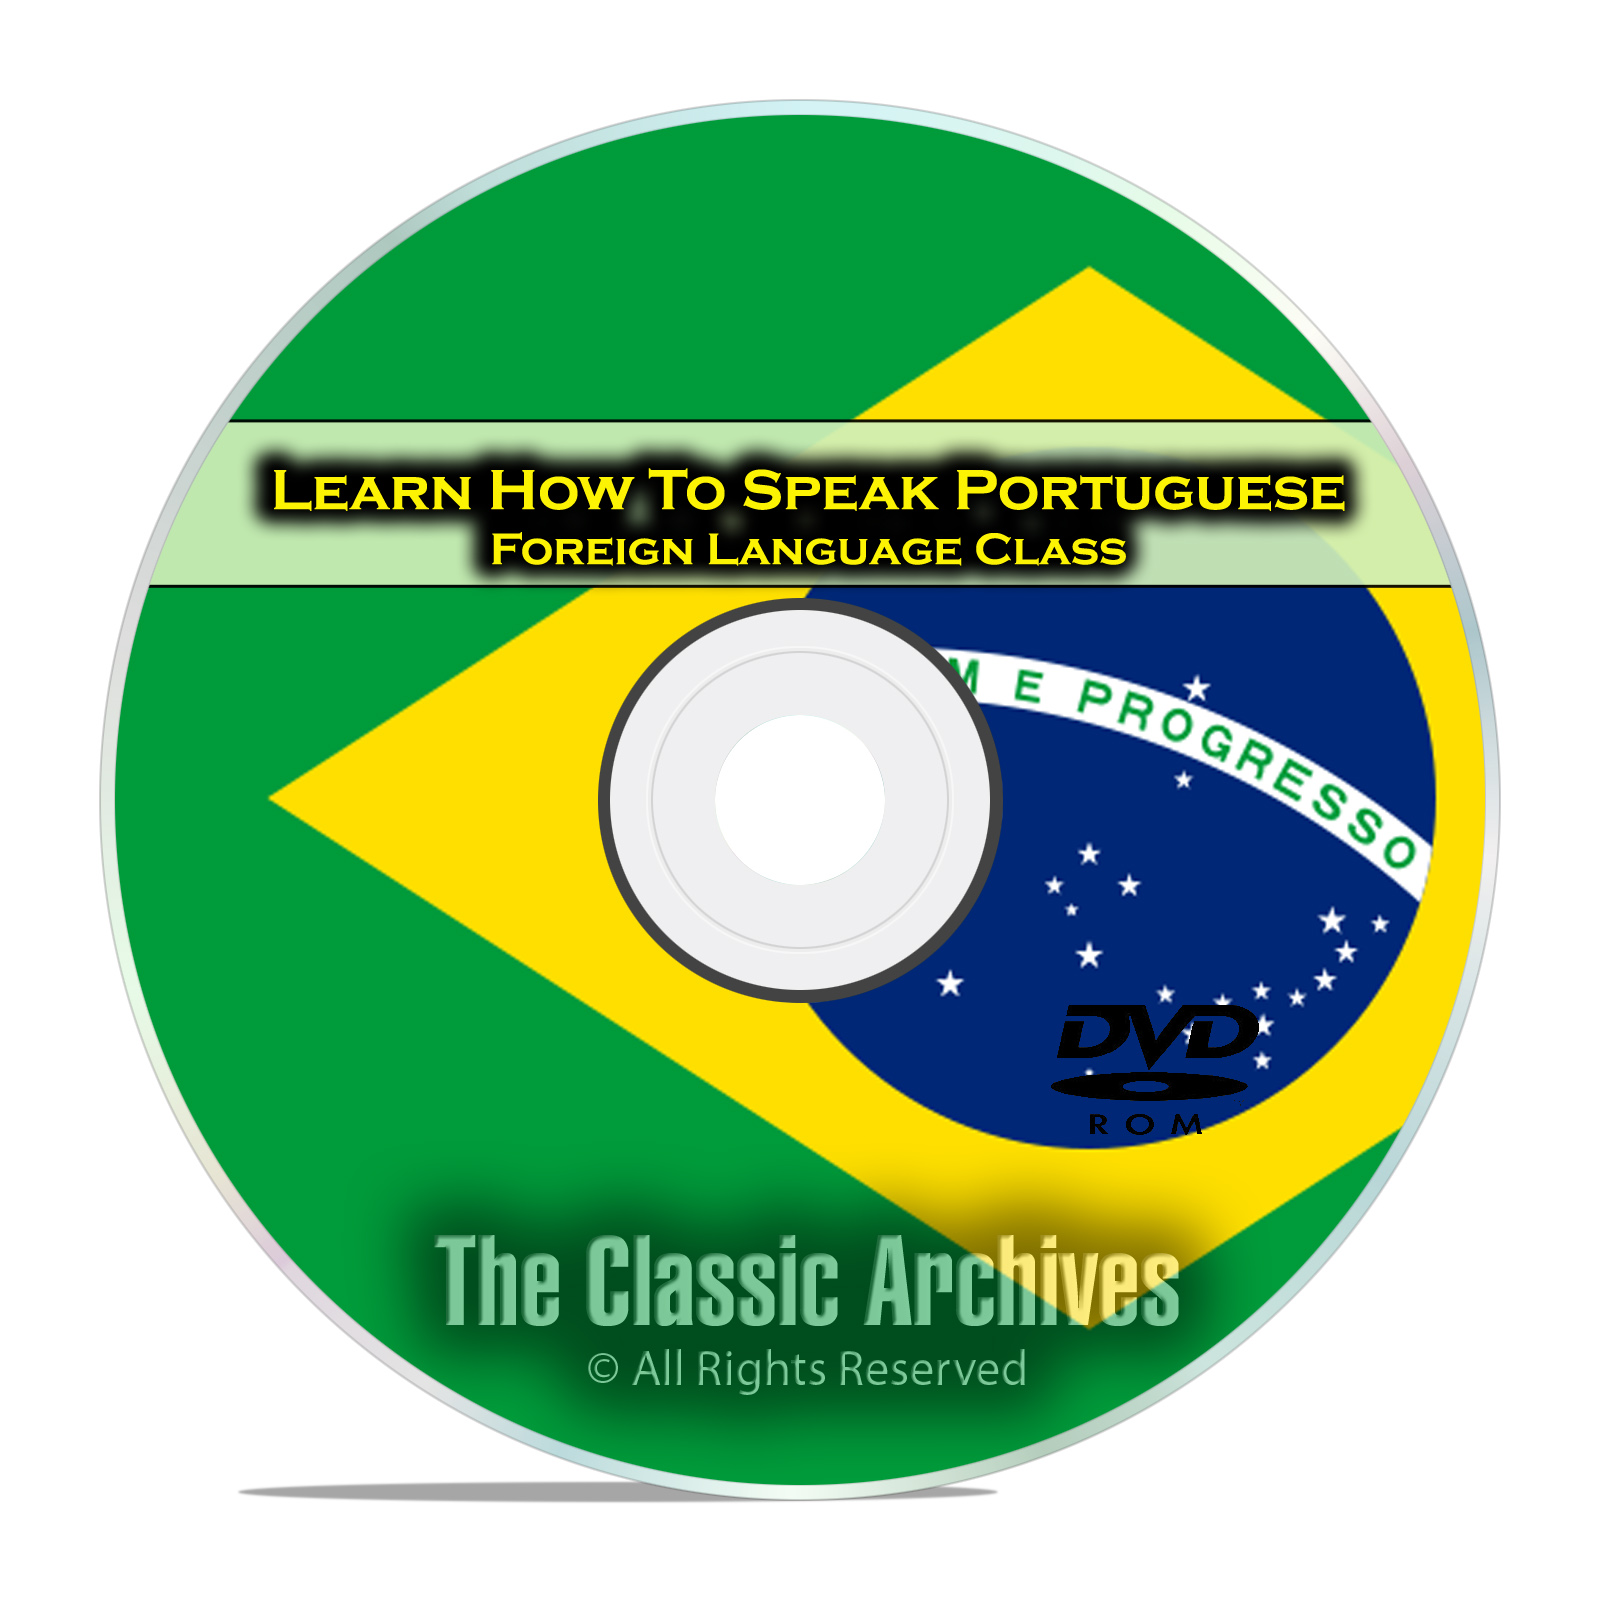 Learn How To Speak Portuguese, Fast Foreign Language Training Course, DVD